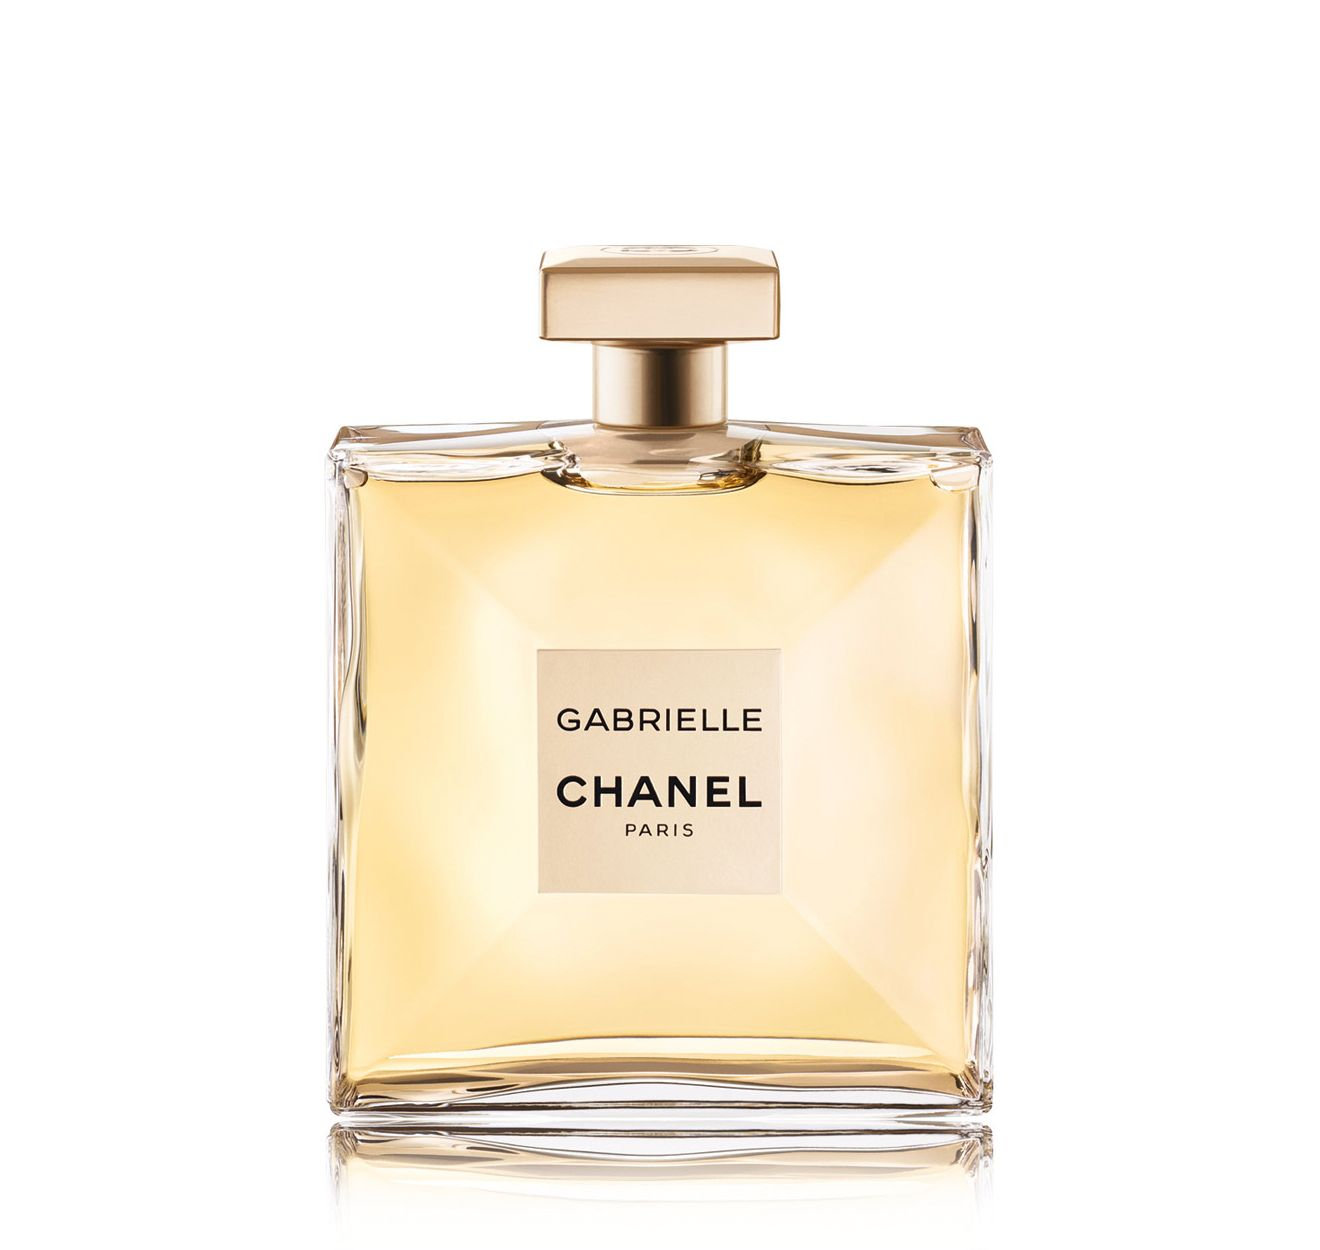 CHANEL GABRIELLE CHANEL Eau de Parfum Spray 3 4 oz Fragrance